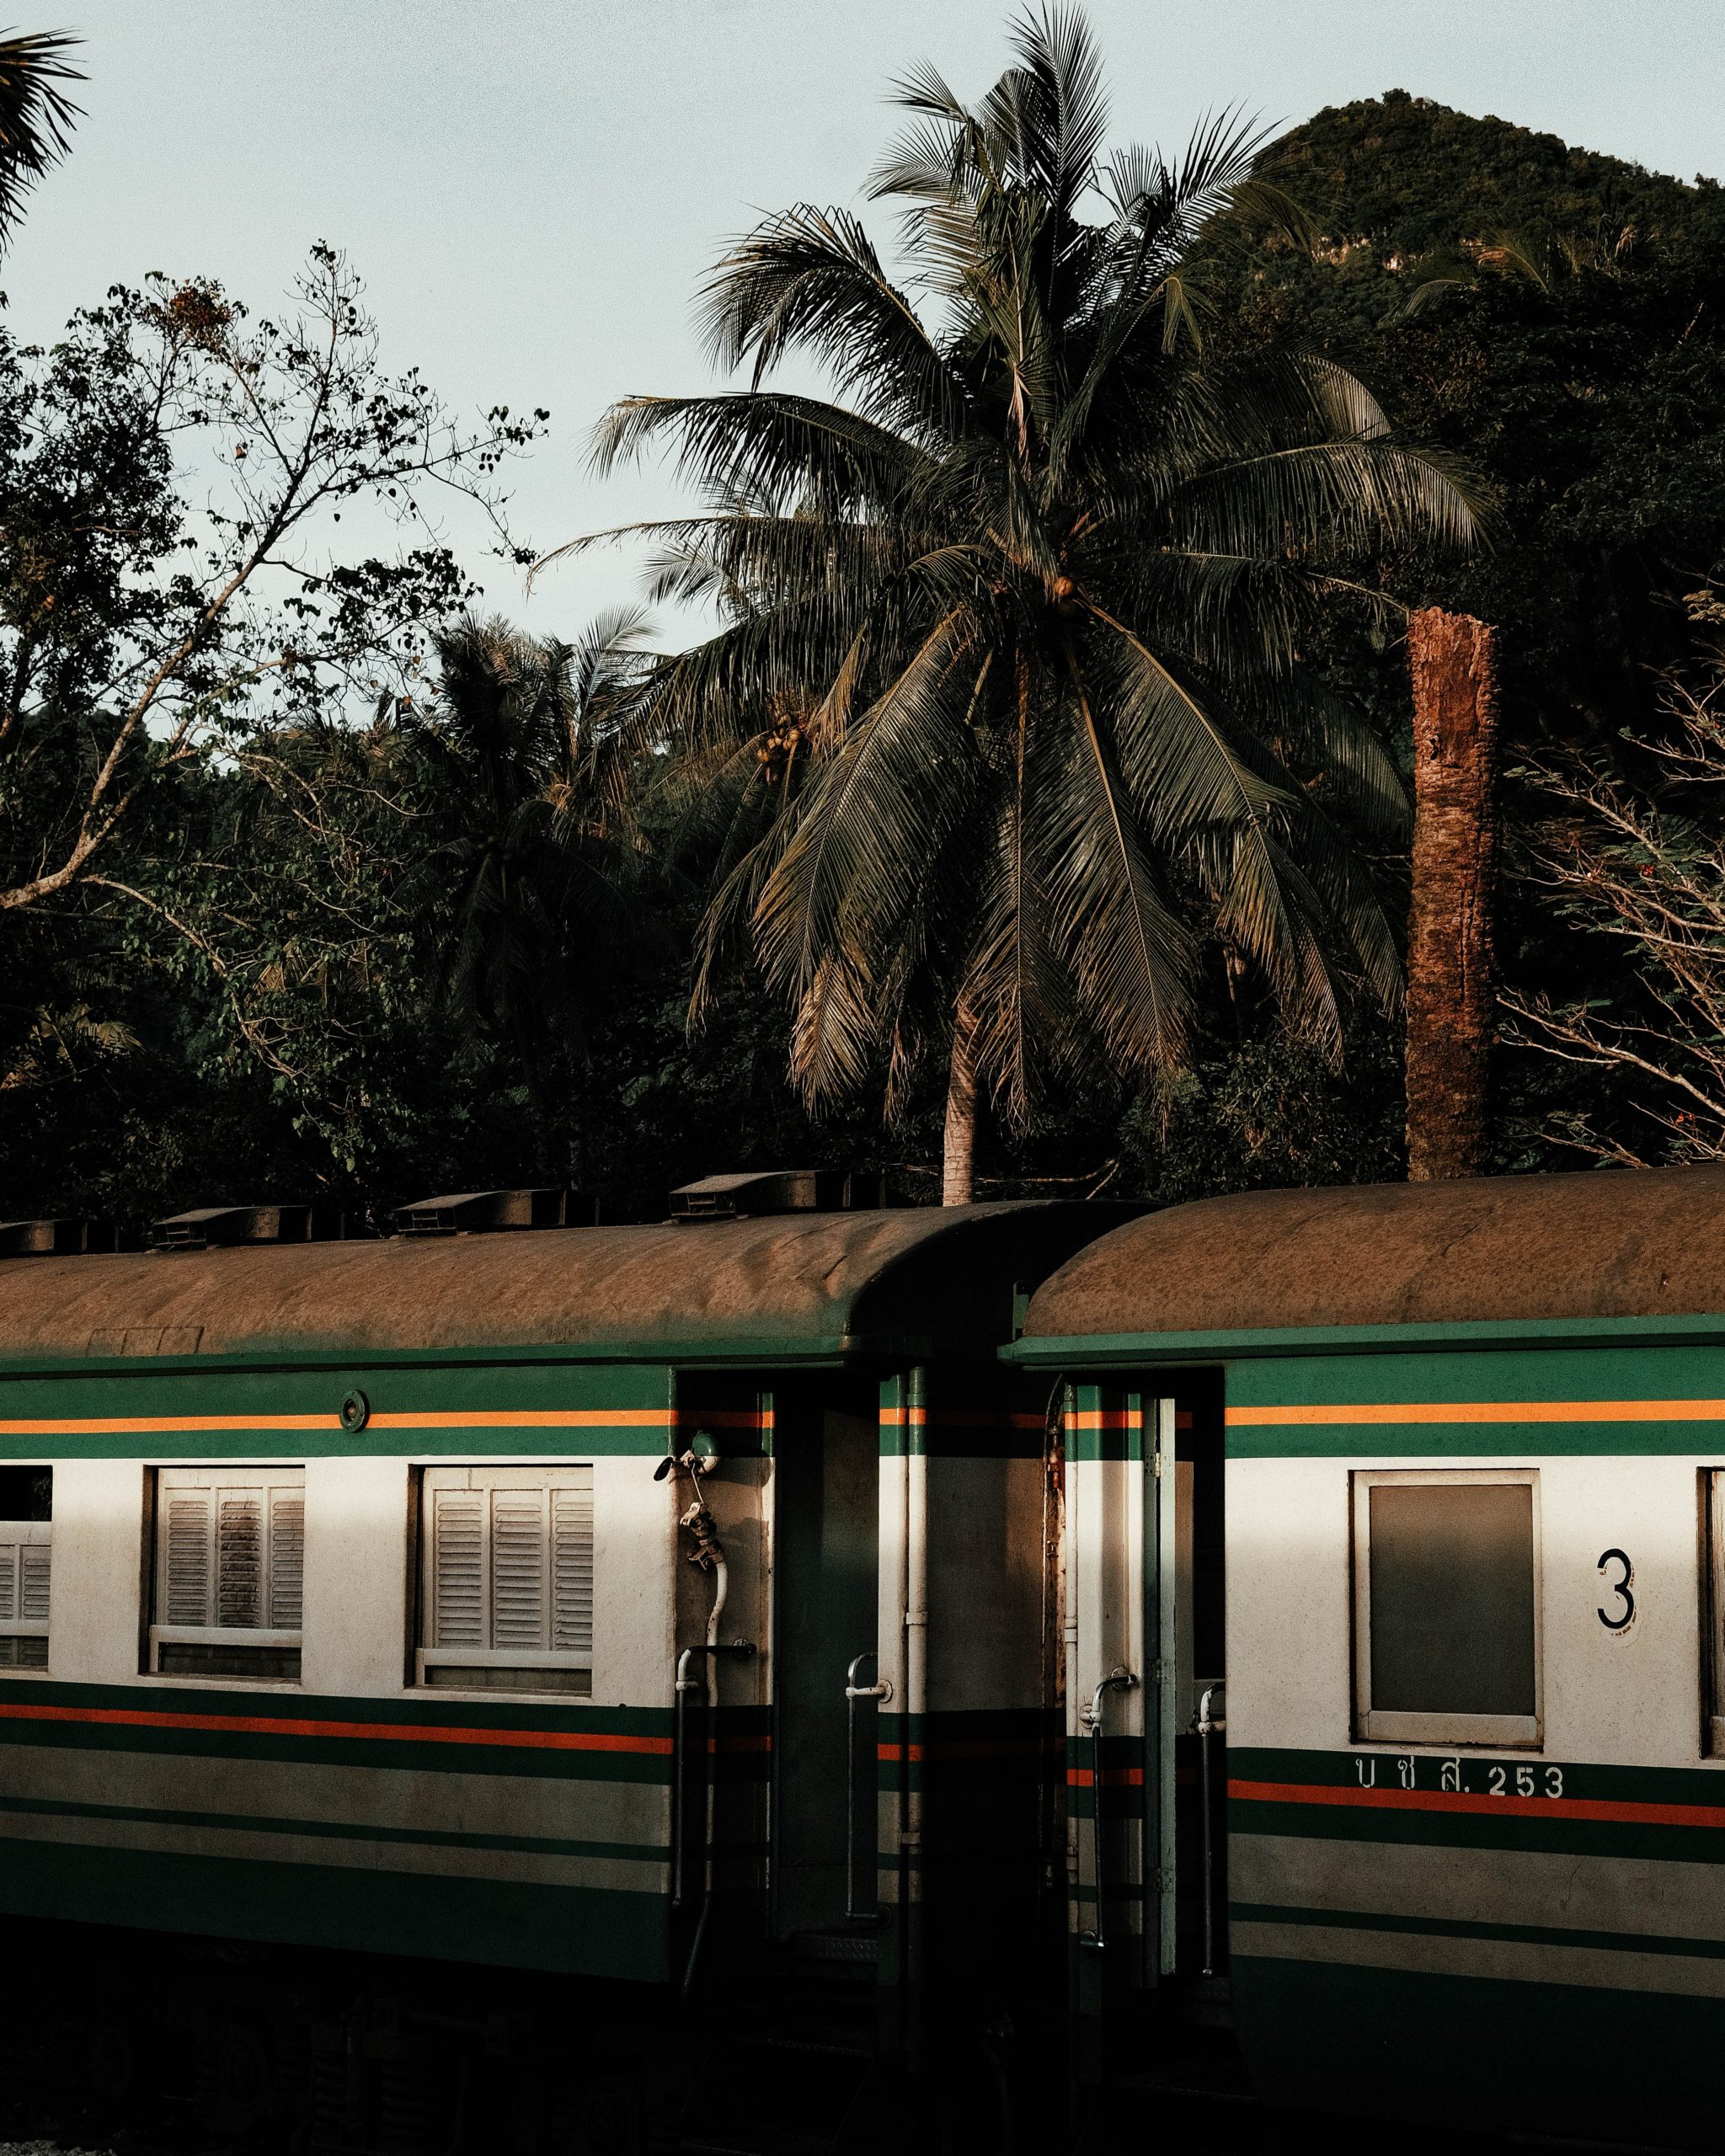 green and white train near palm trees during daytime